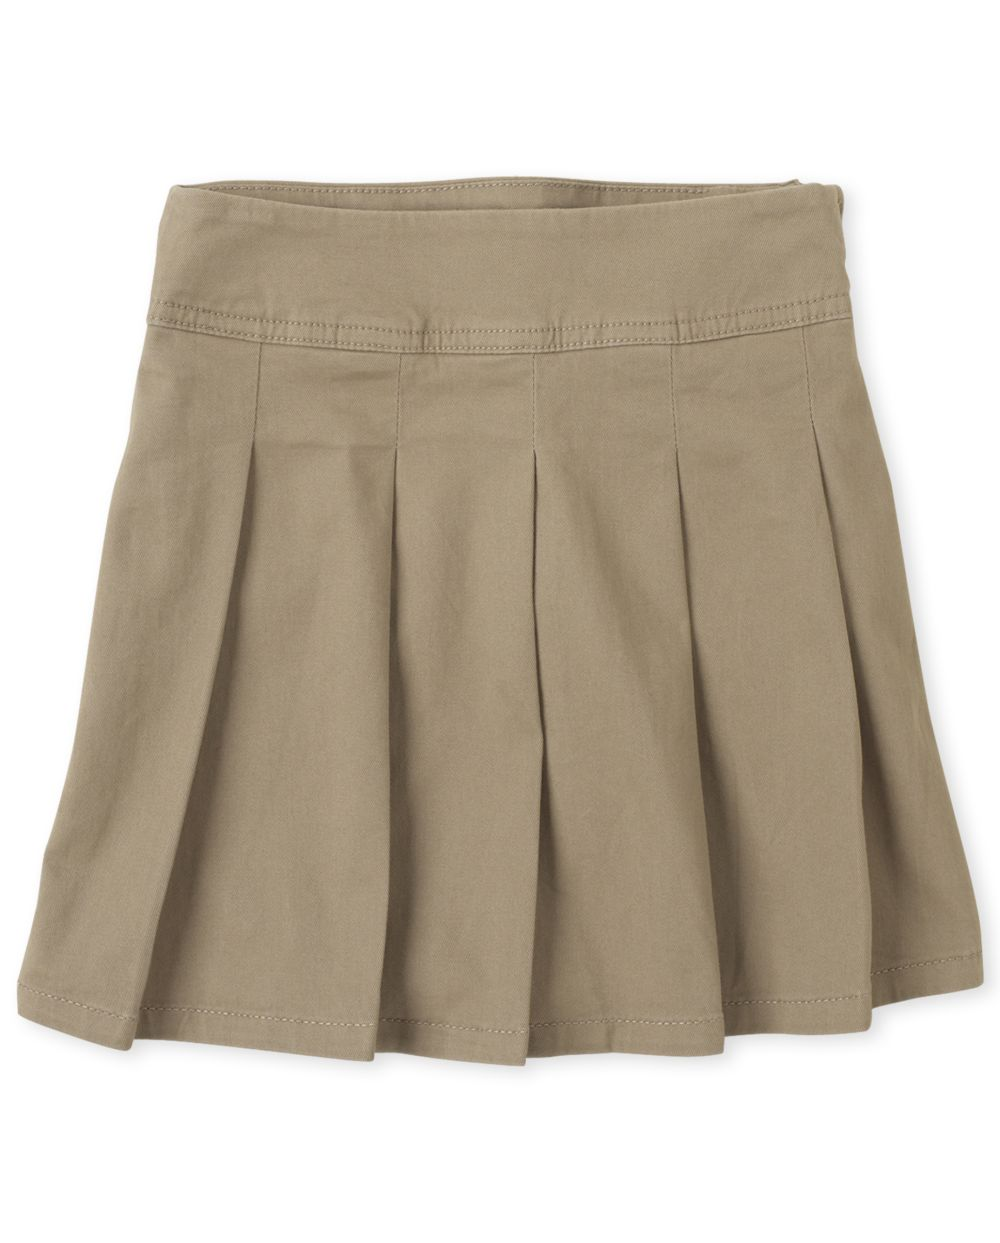 Girls Uniform Pleated Skort